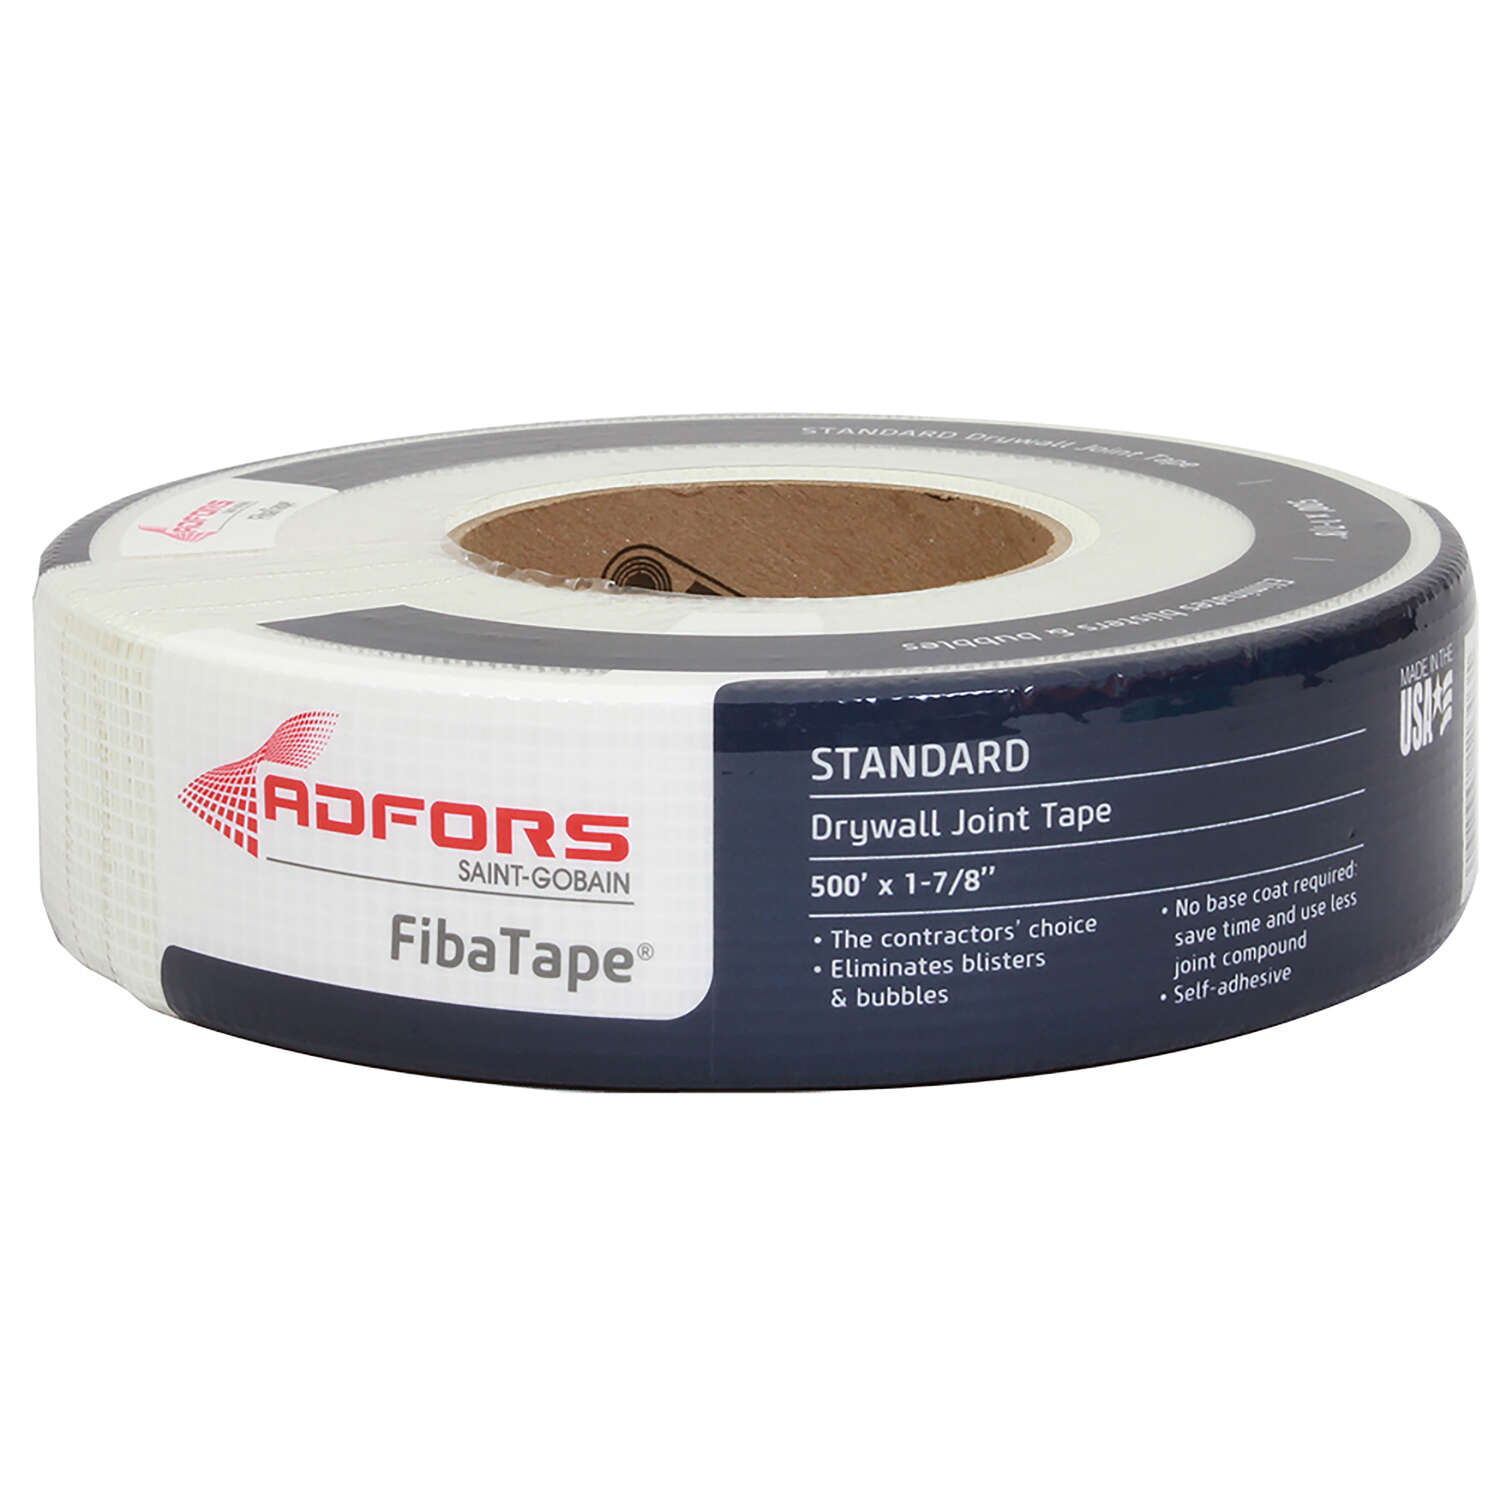 ADFORS  FibaTape  500 ft. L x 1-7/8 in. W Fiberglass Mesh  White  Self Adhesive Drywall Tape